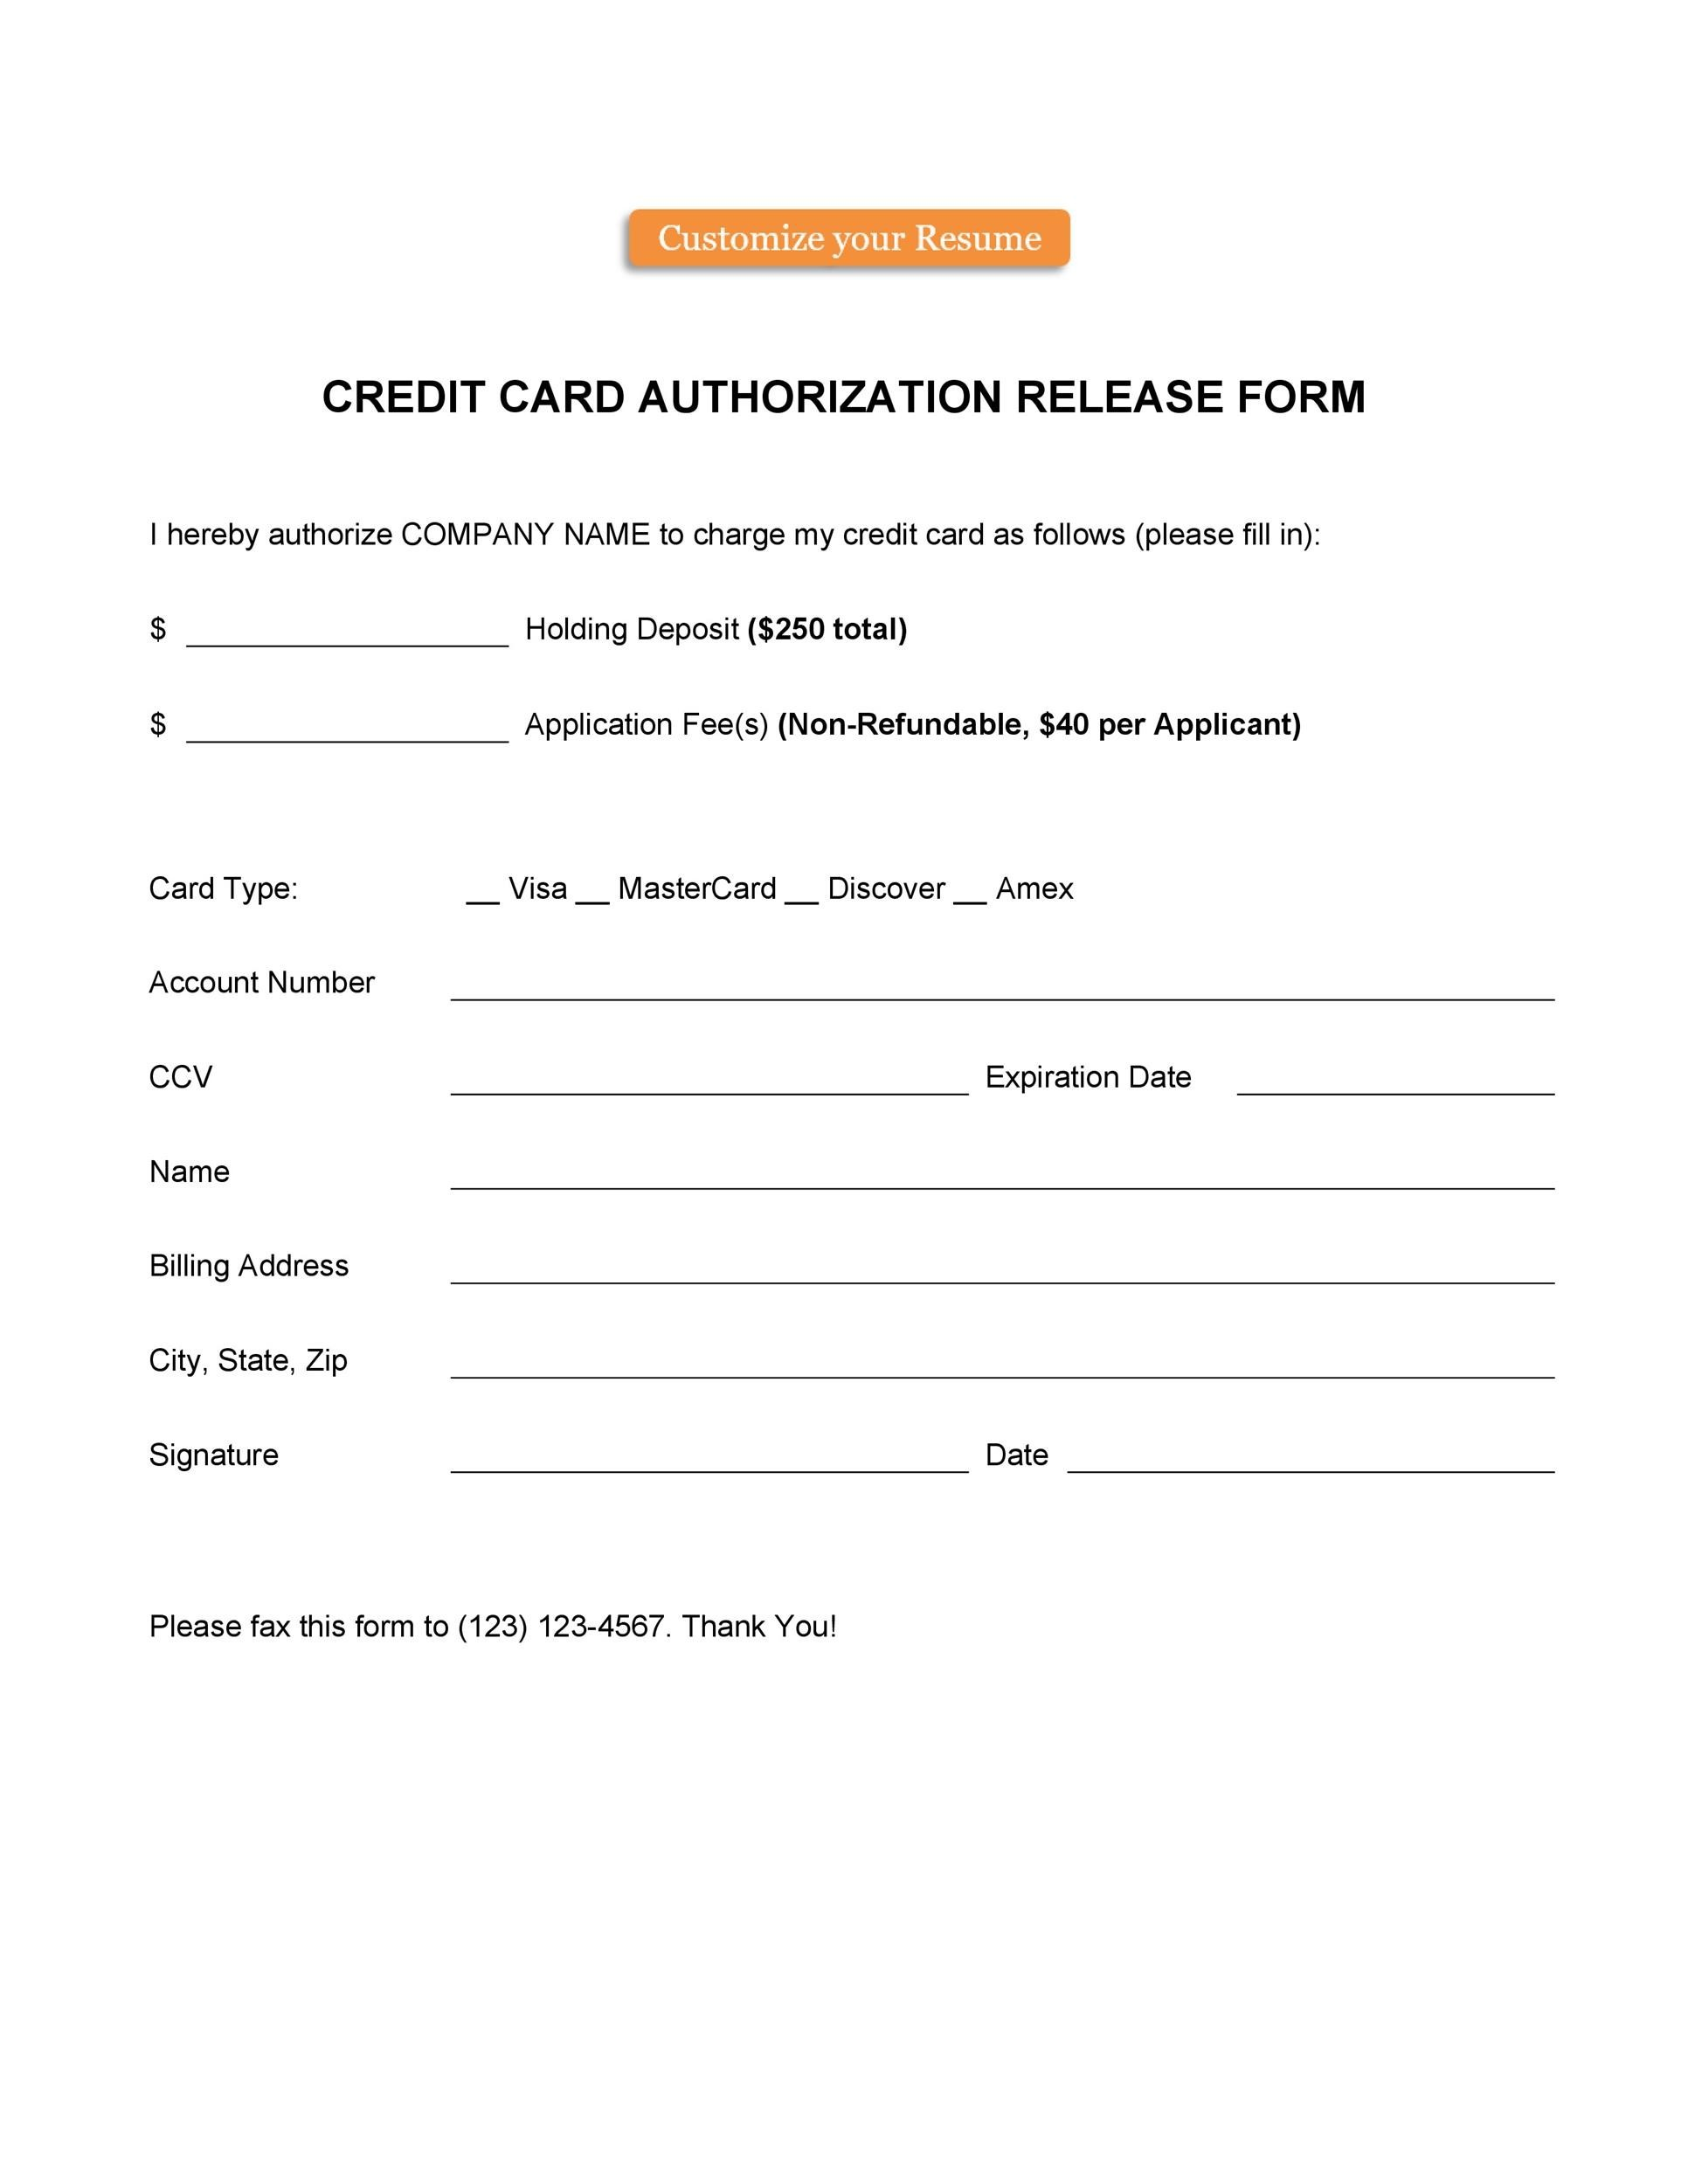 41 Credit Card Authorization Forms Templates Ready To Use